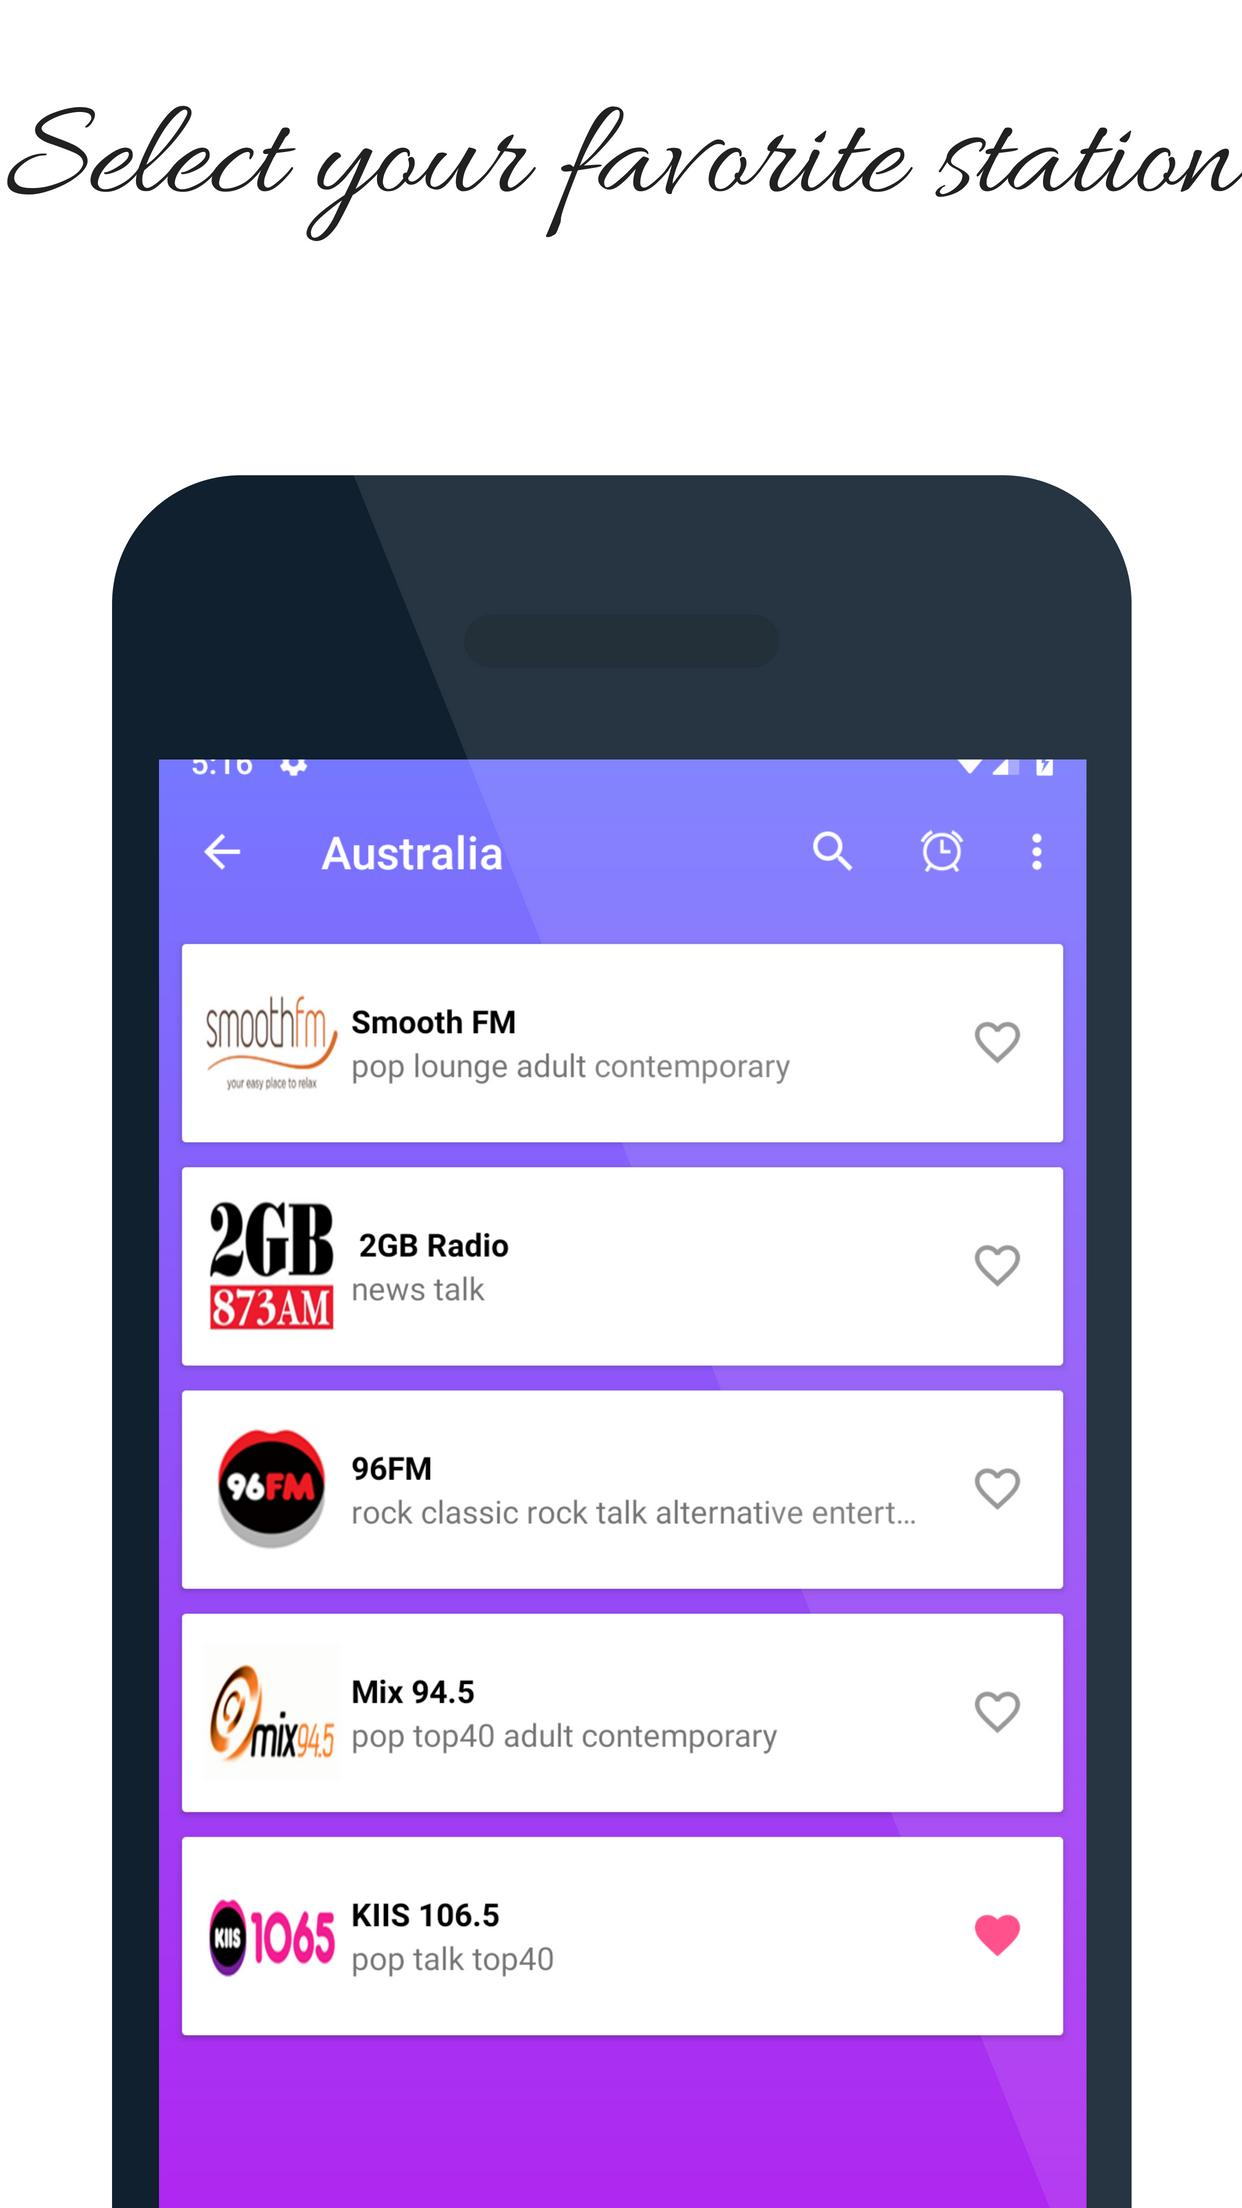 Kiis Fm 106 5 Radio Station Australia For Android Apk Download